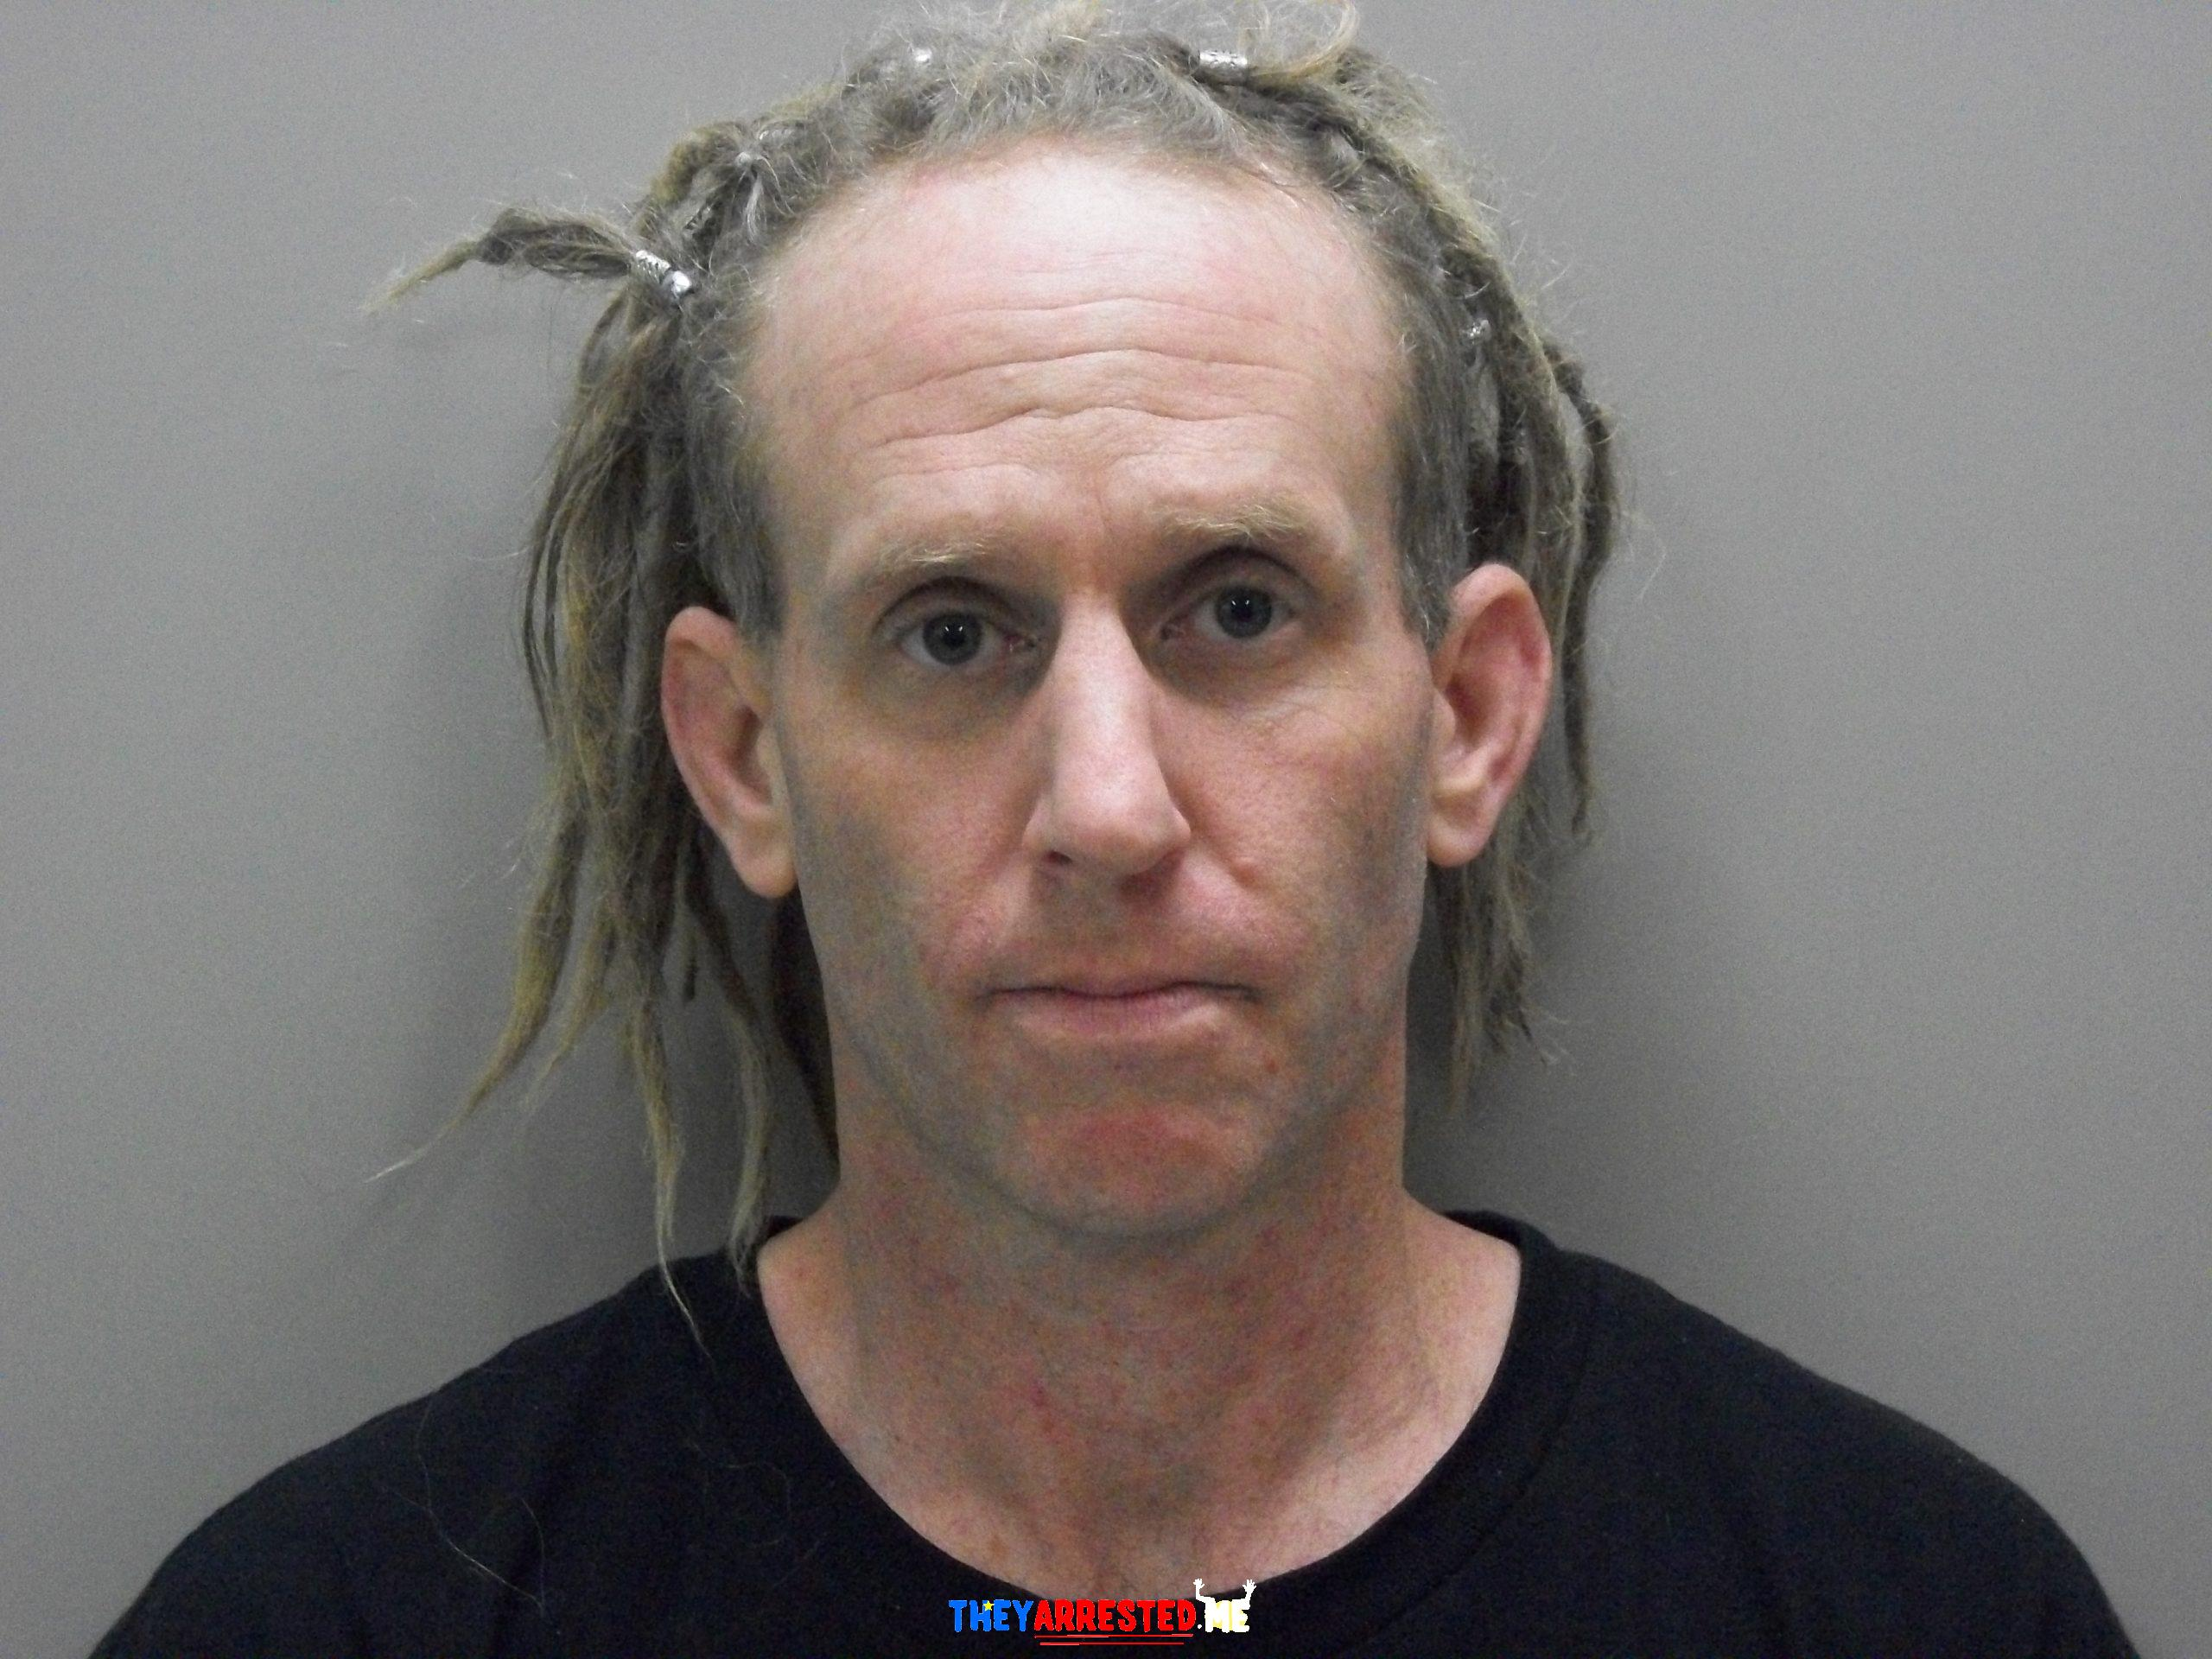 CHRISTOPHER-STEPHEN-WALL (WCSO)